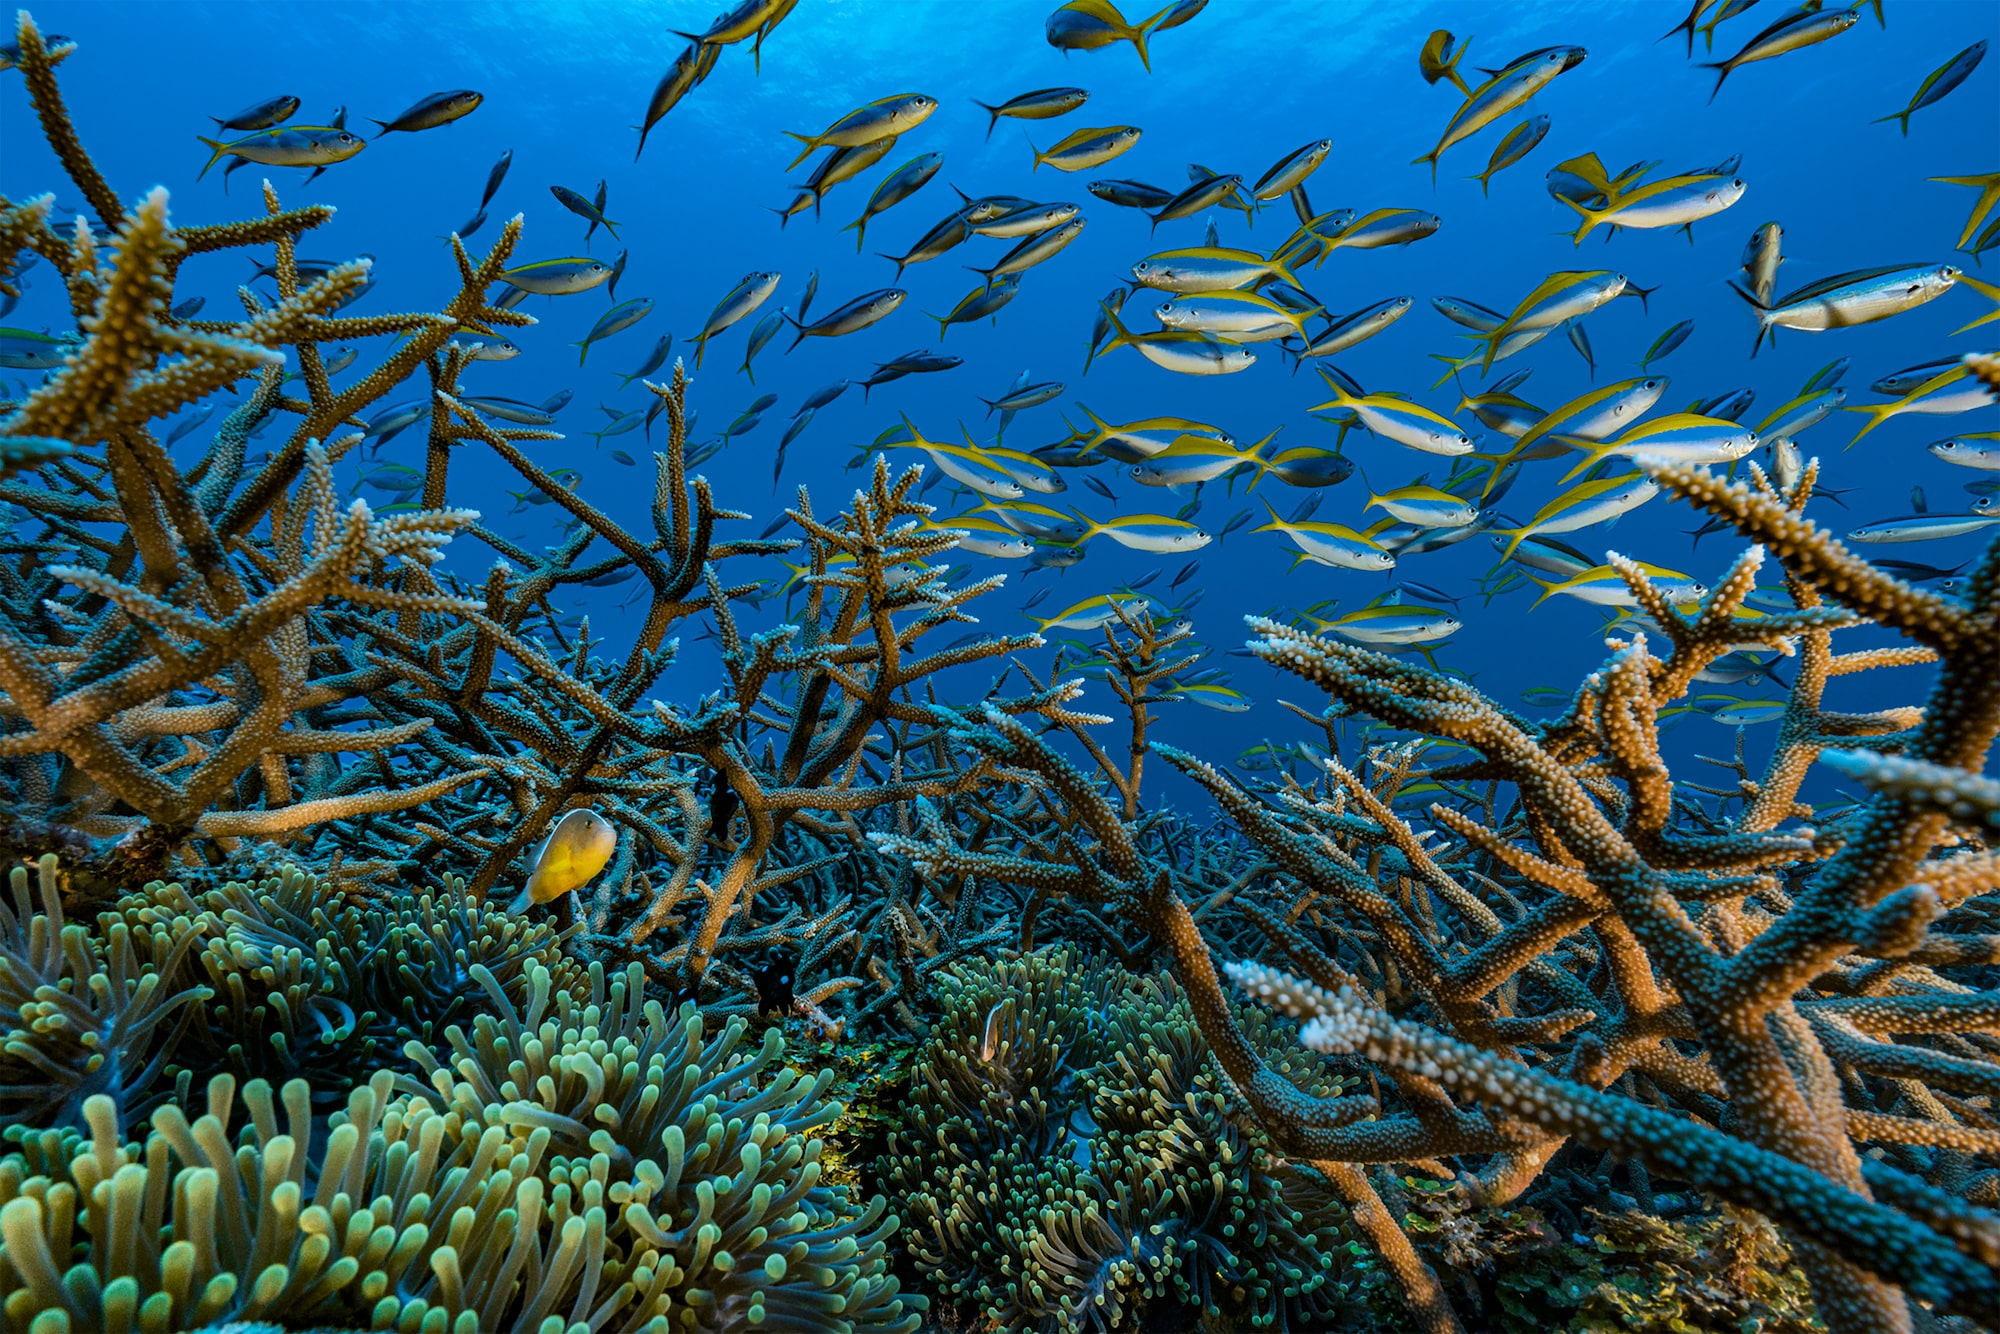 alexis-rosenfeld-sony-A7RM2-a-shoal-of-yellow-and-blue-fish-swimming-through-a-bed-of-coral.jpg